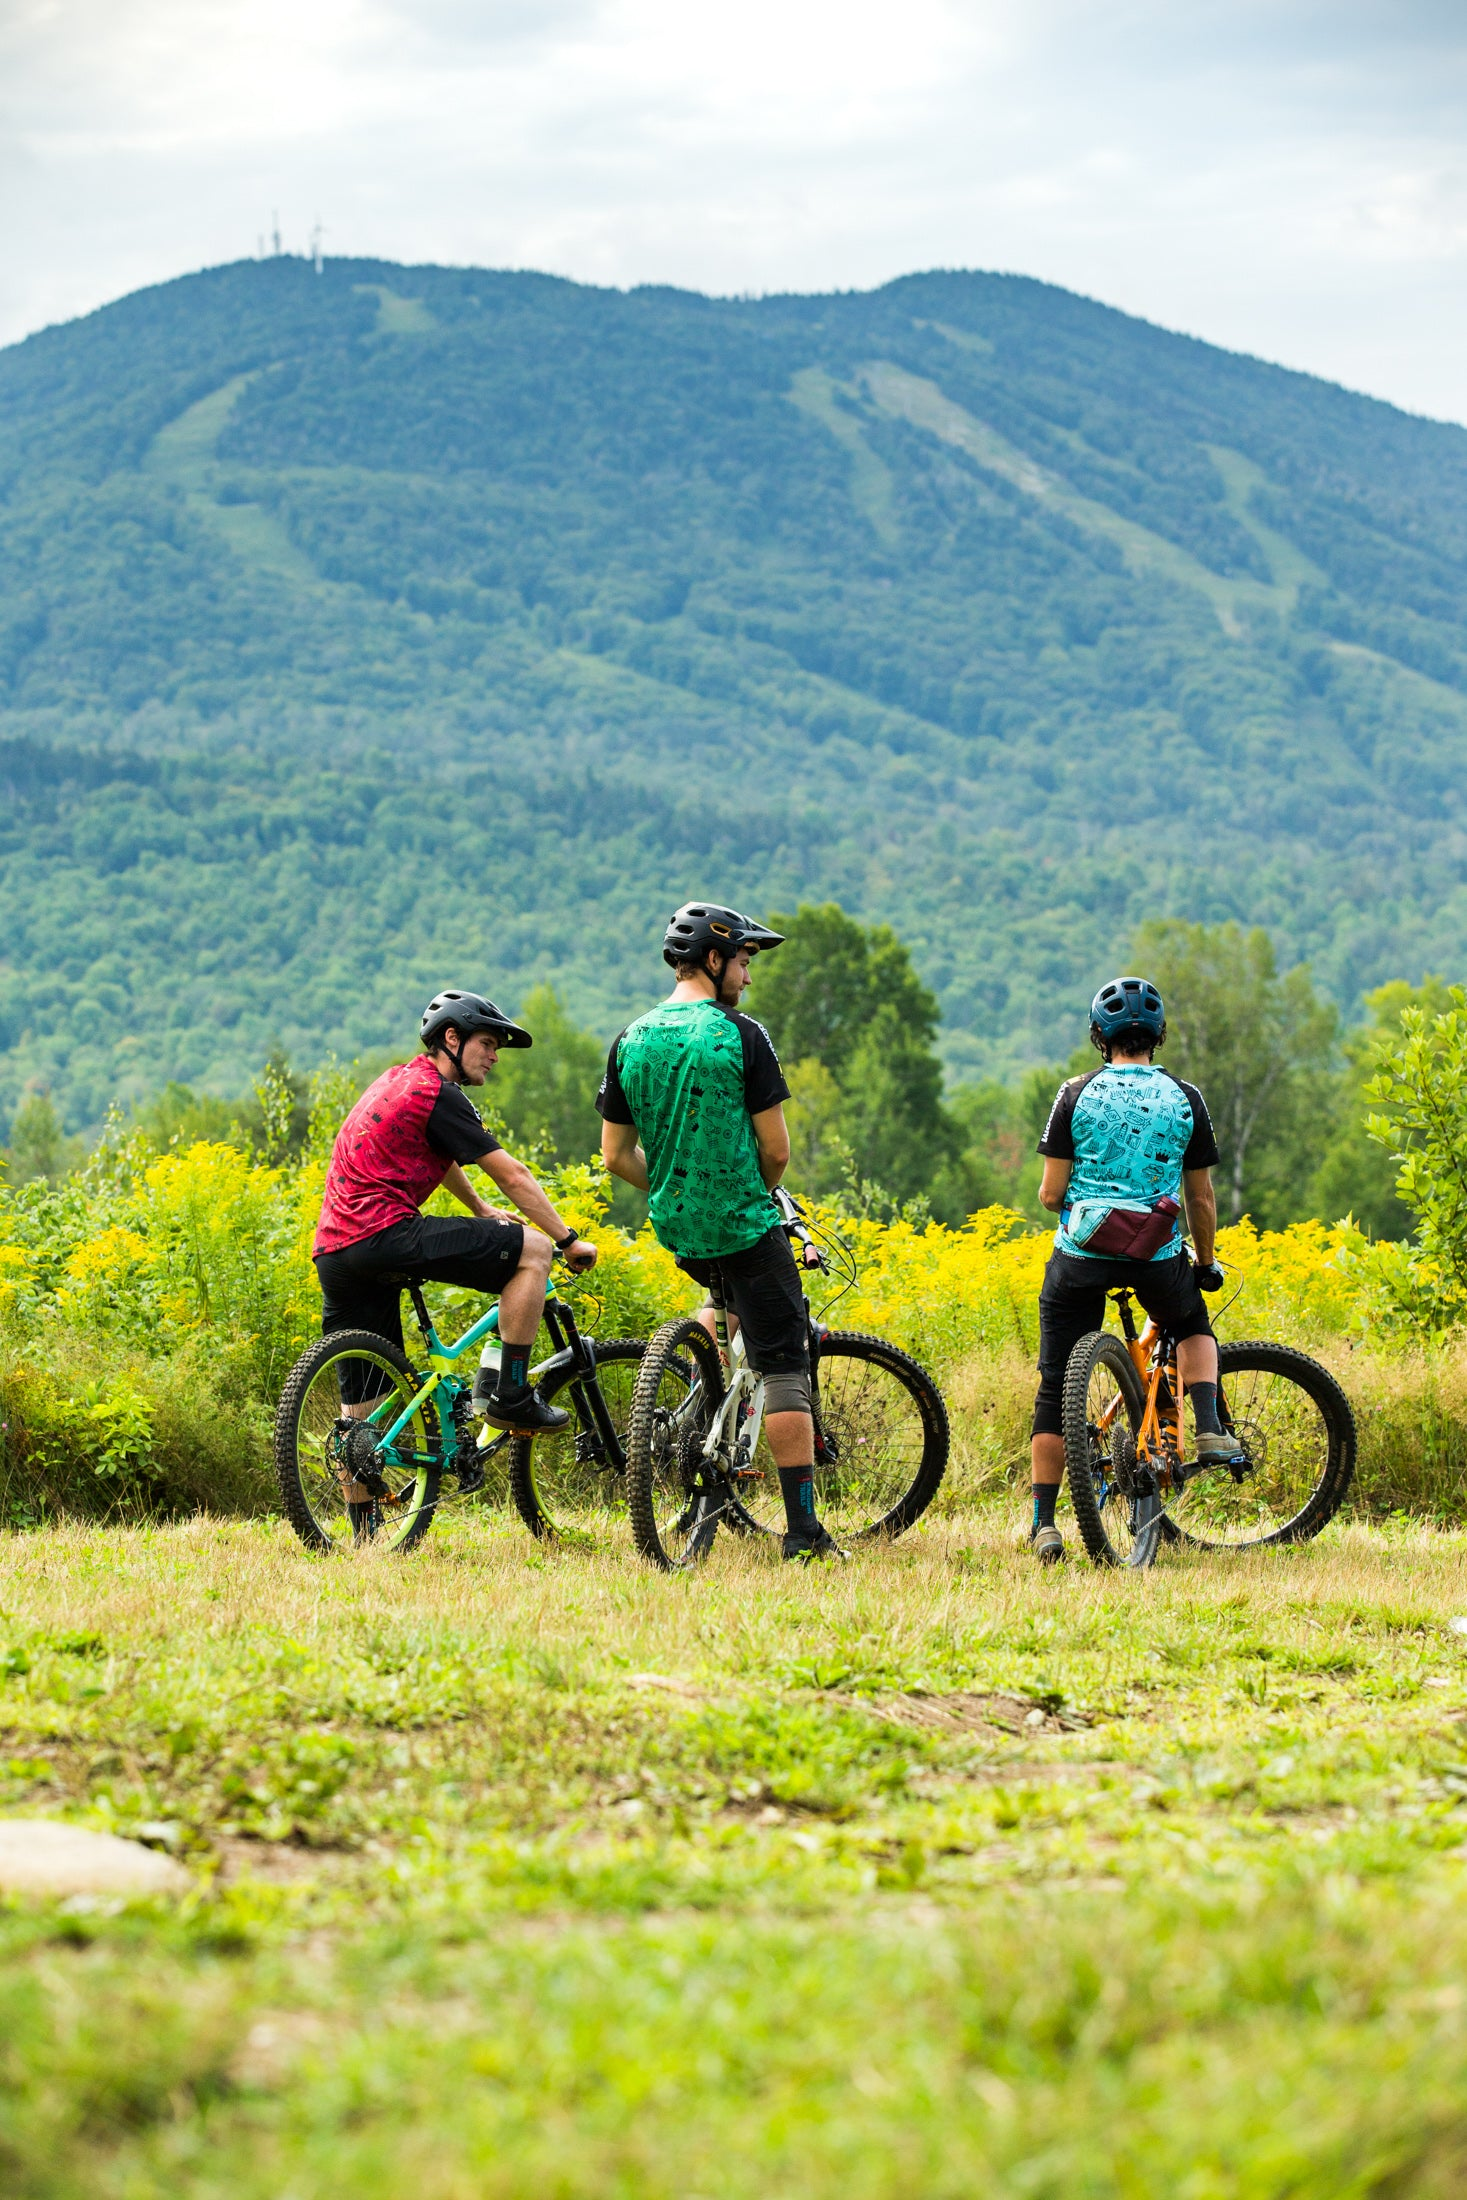 The trails are geared toward riders of all levels, from beginners to experts.